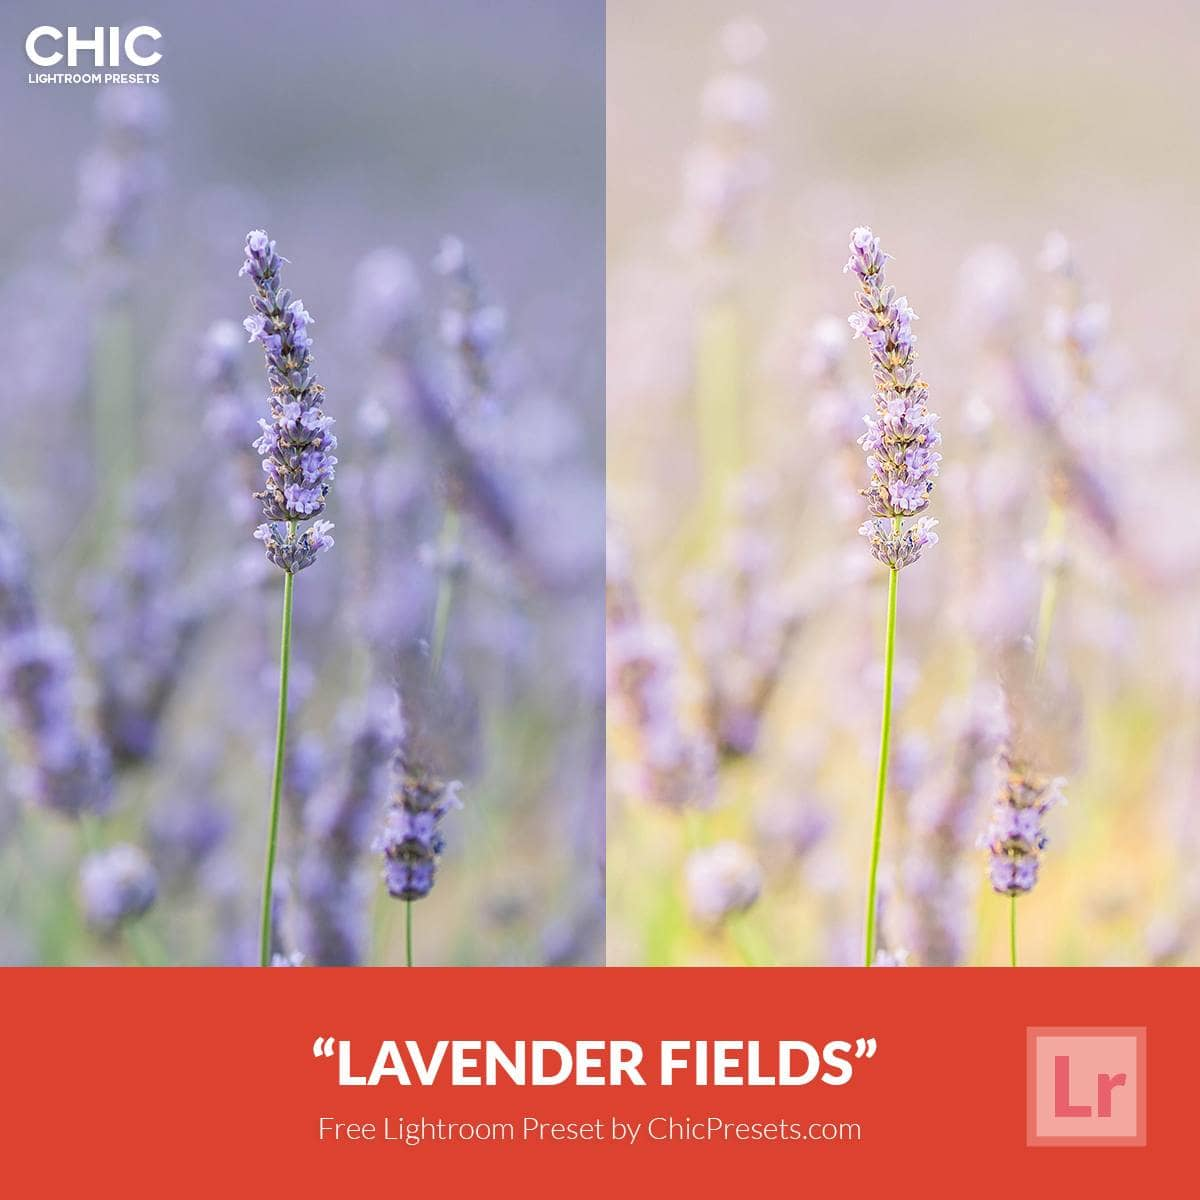 Free-Lightroom-Preset-Lavender-Fields-5